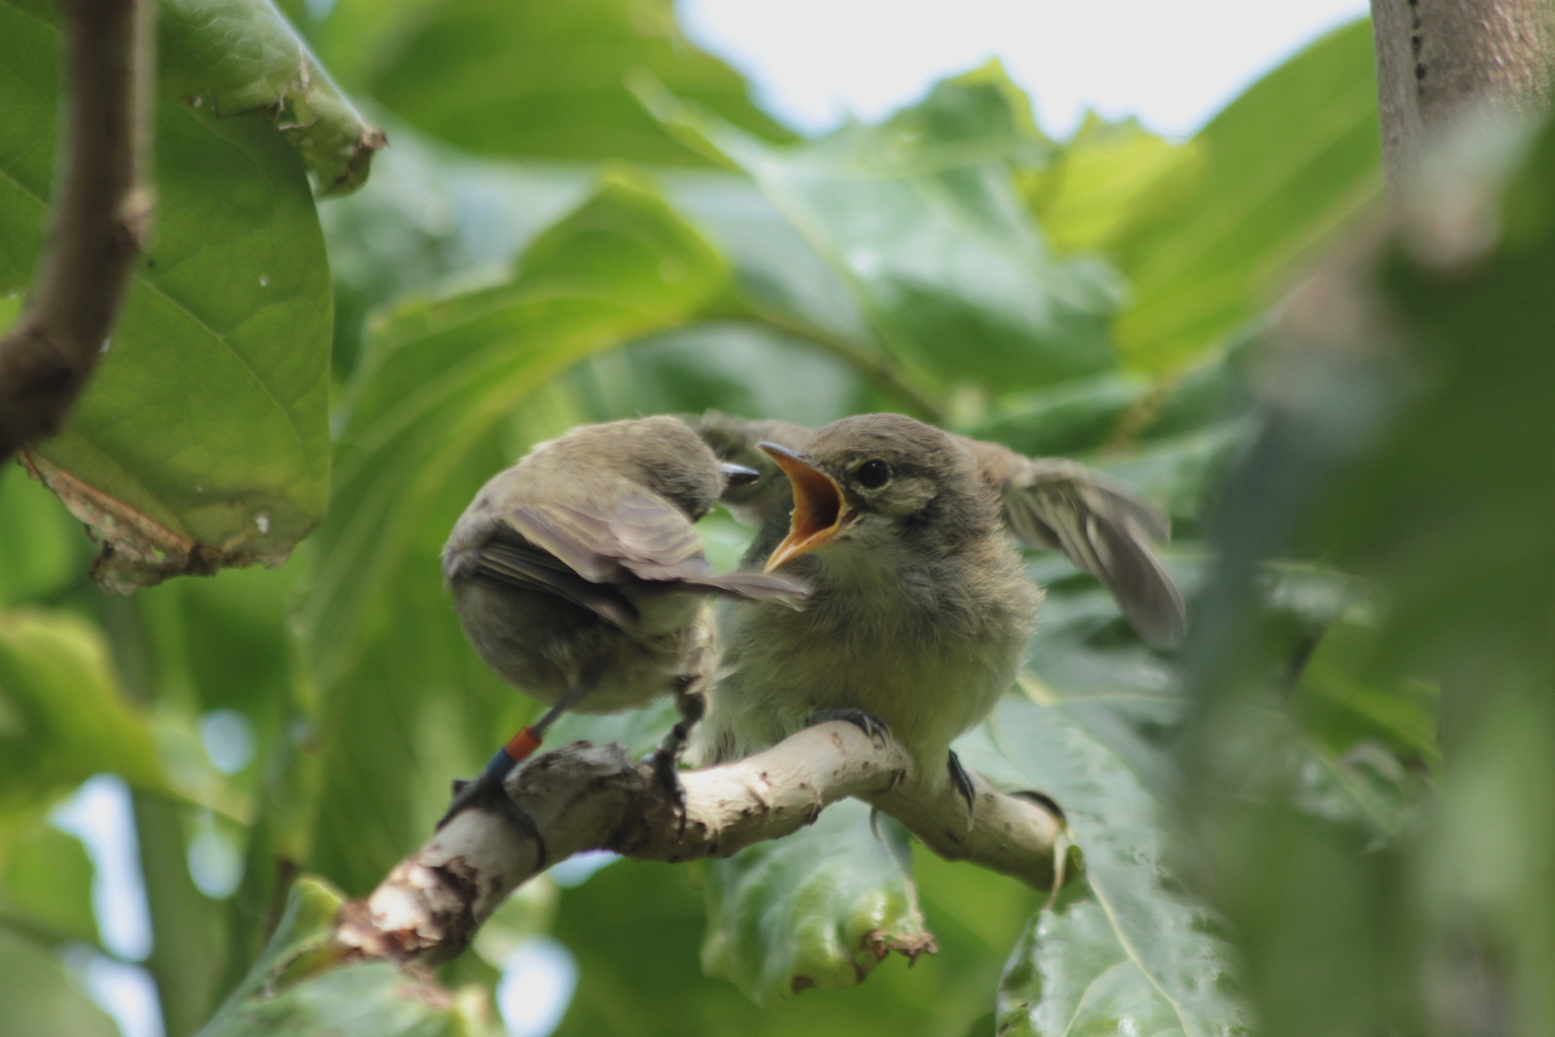 According to a new study, birds may care for the offspring of other birds when they are hoping for future rewards.